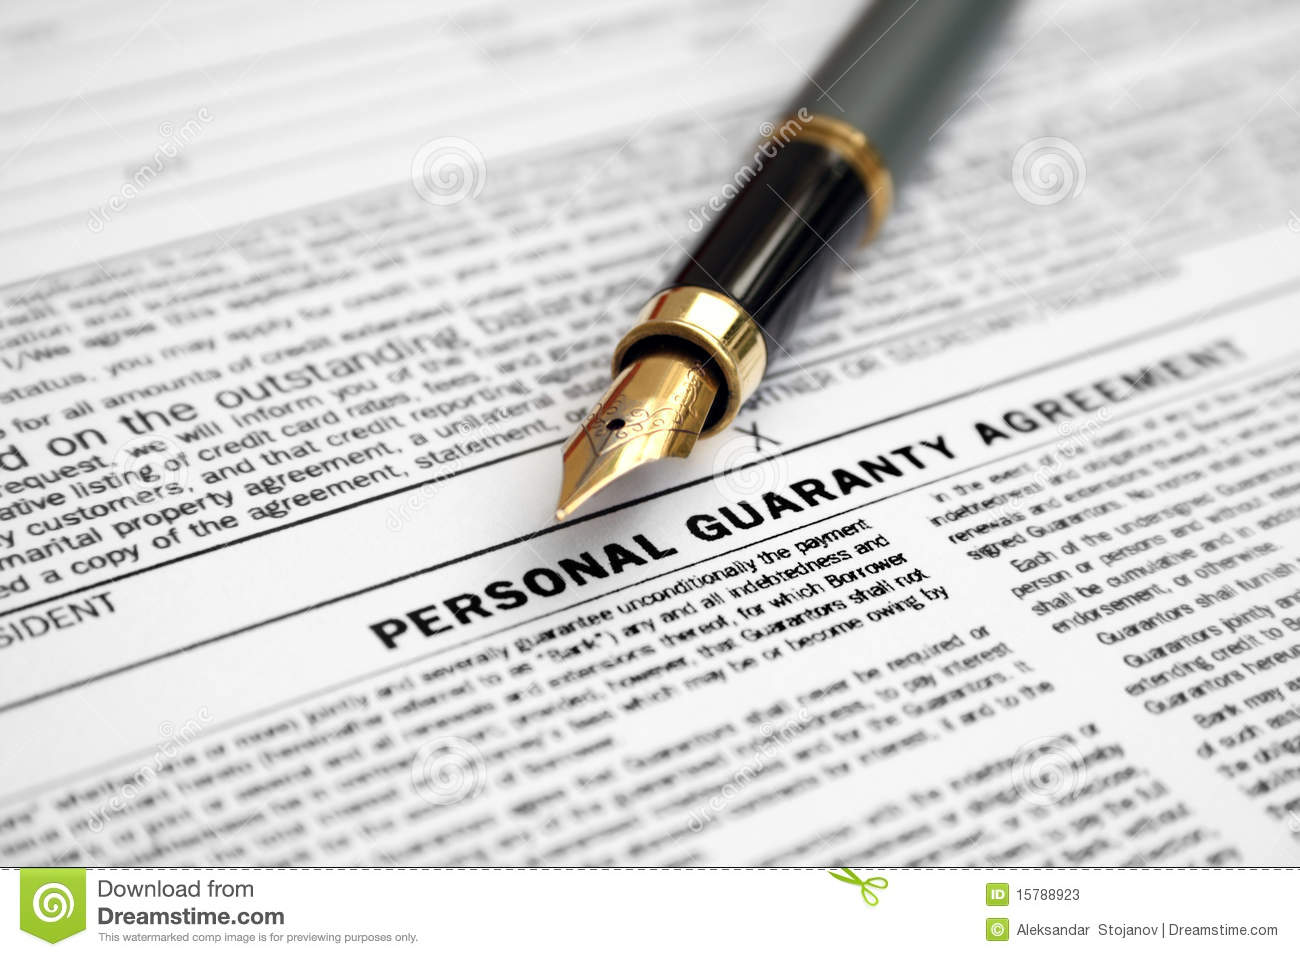 Personal Guaranty Agreement Stock Image Image Of Sign Occupation